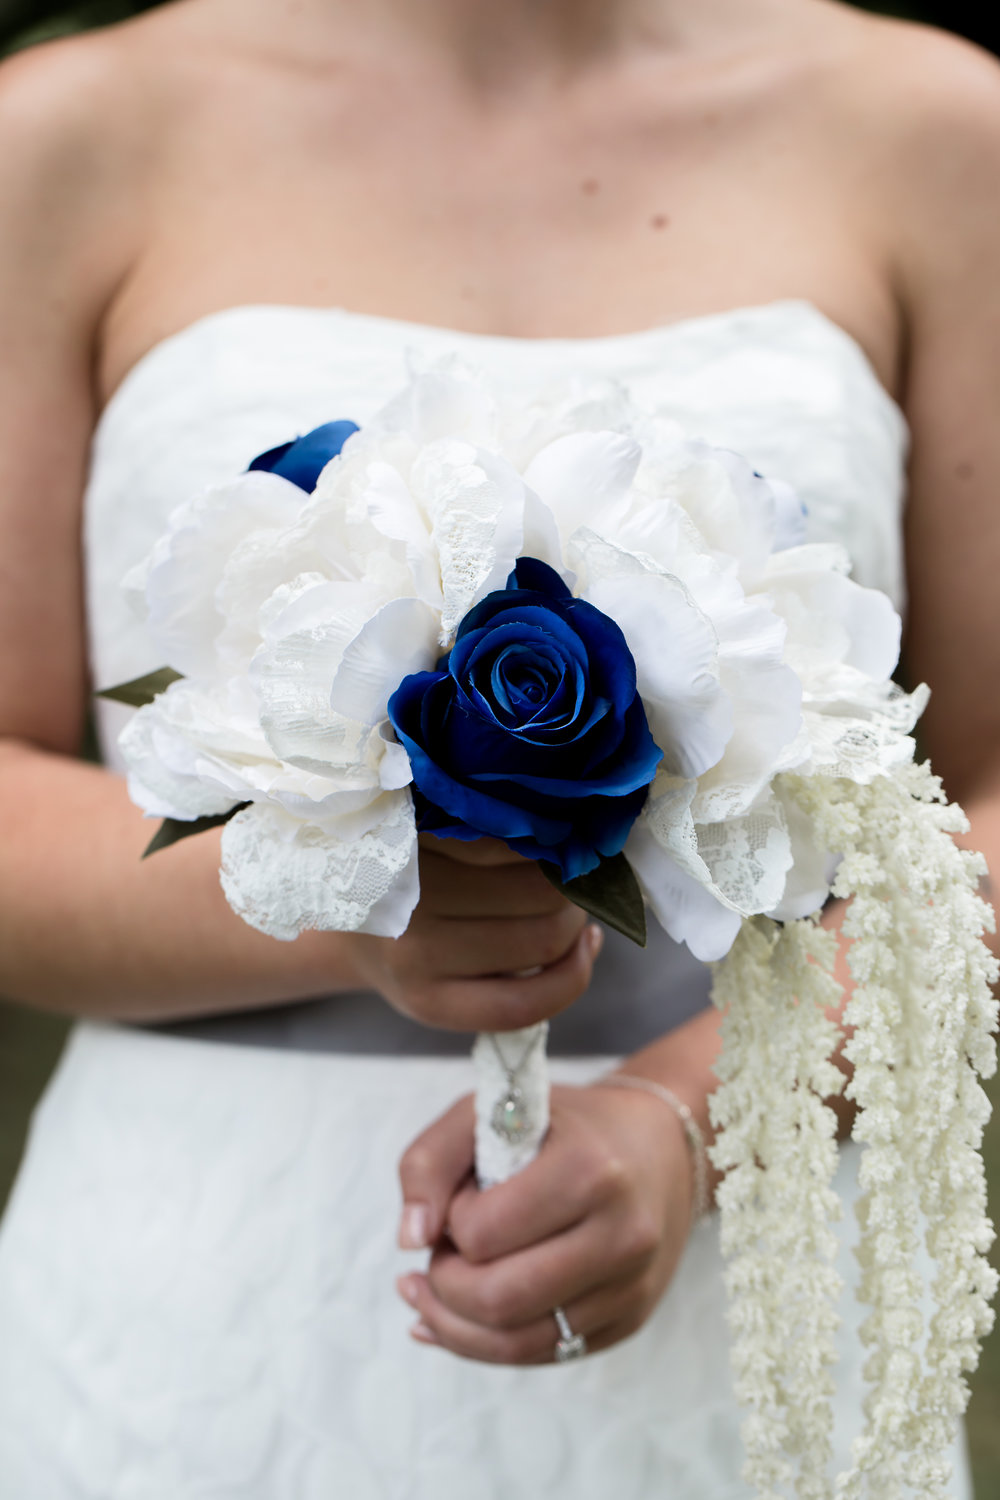 Gandjos_Tinko_BackSeatPhotography_backseatphoto50.JPG